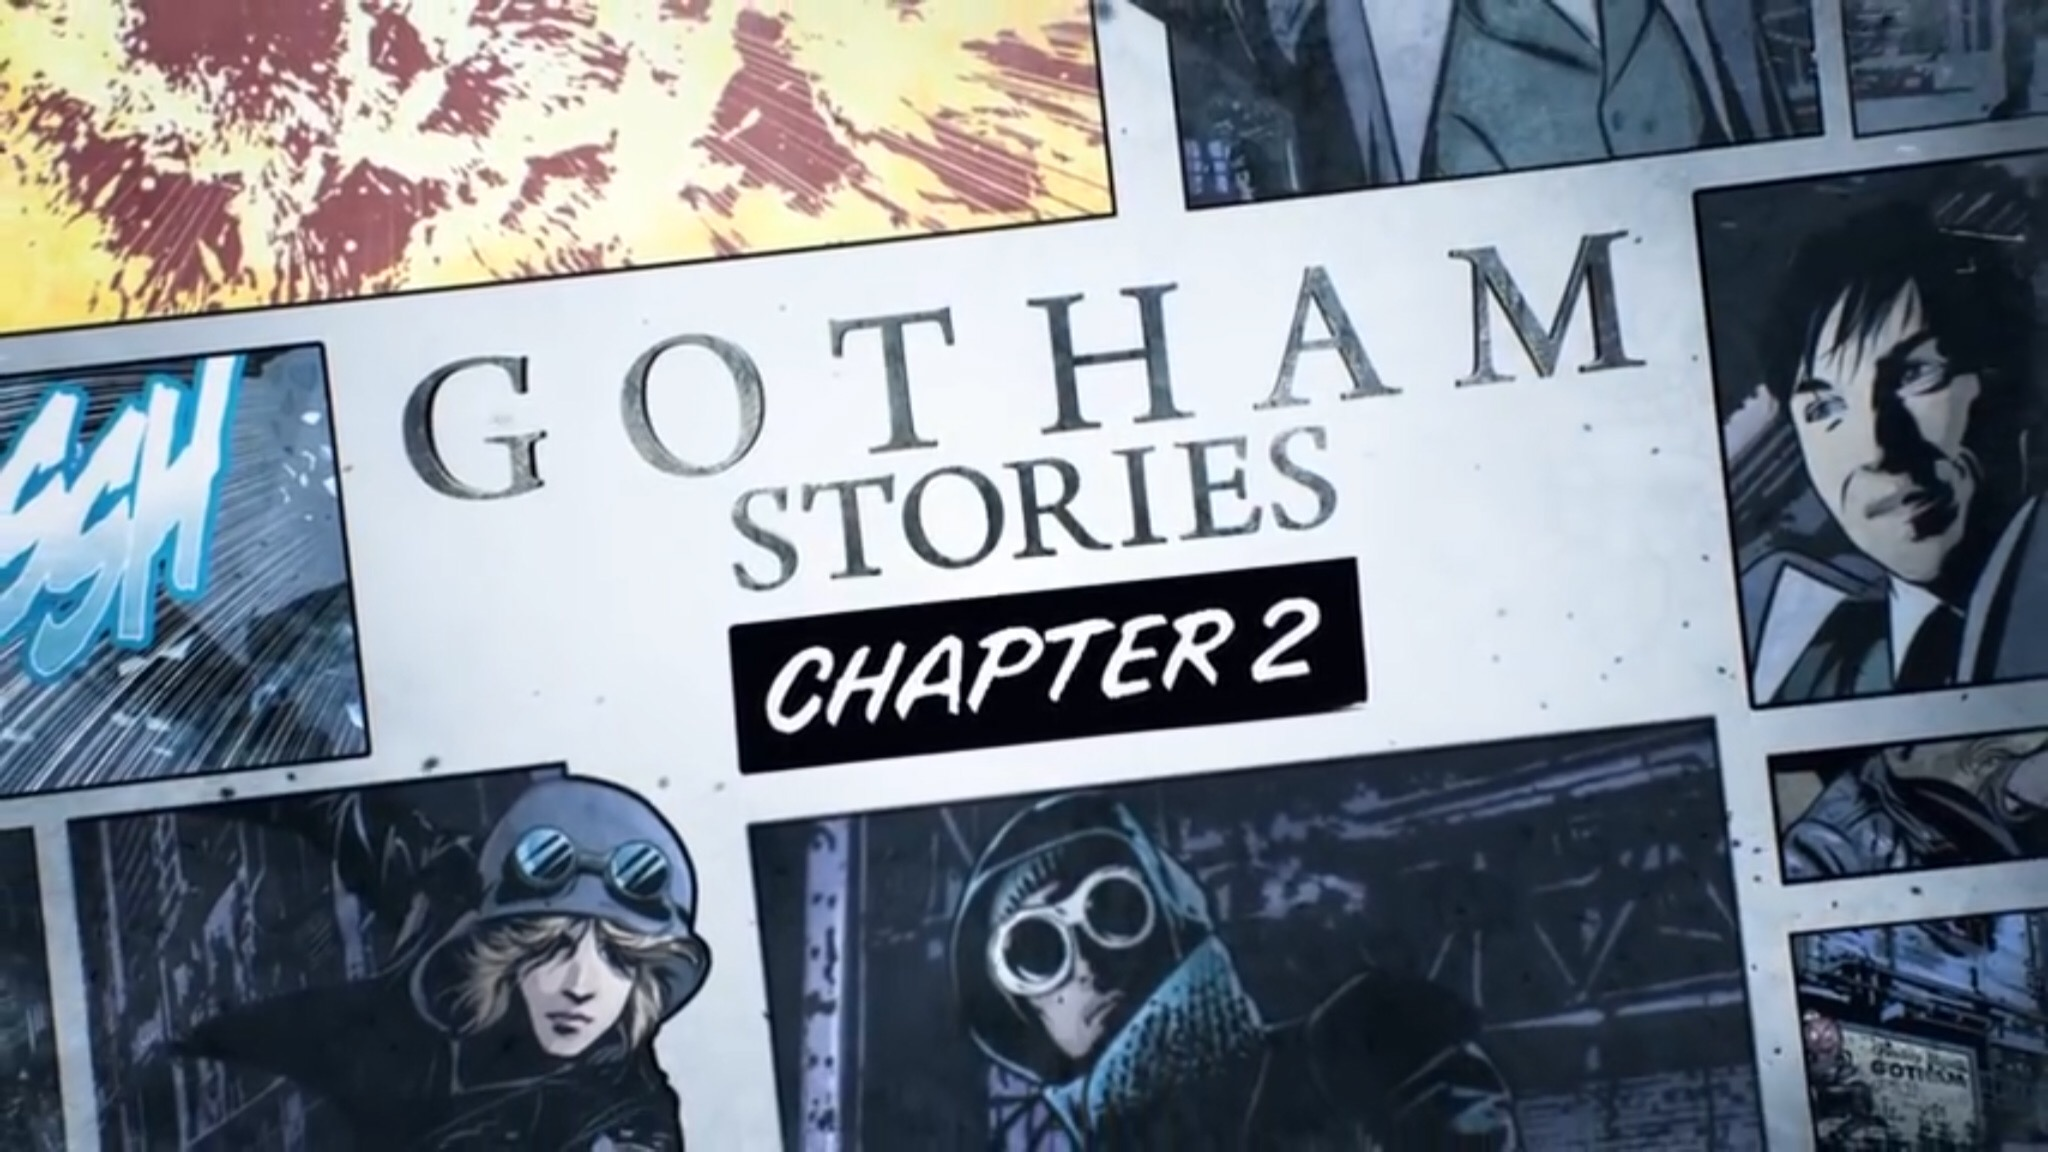 Gotham Stories (Webseries) Episode: Chapter 2